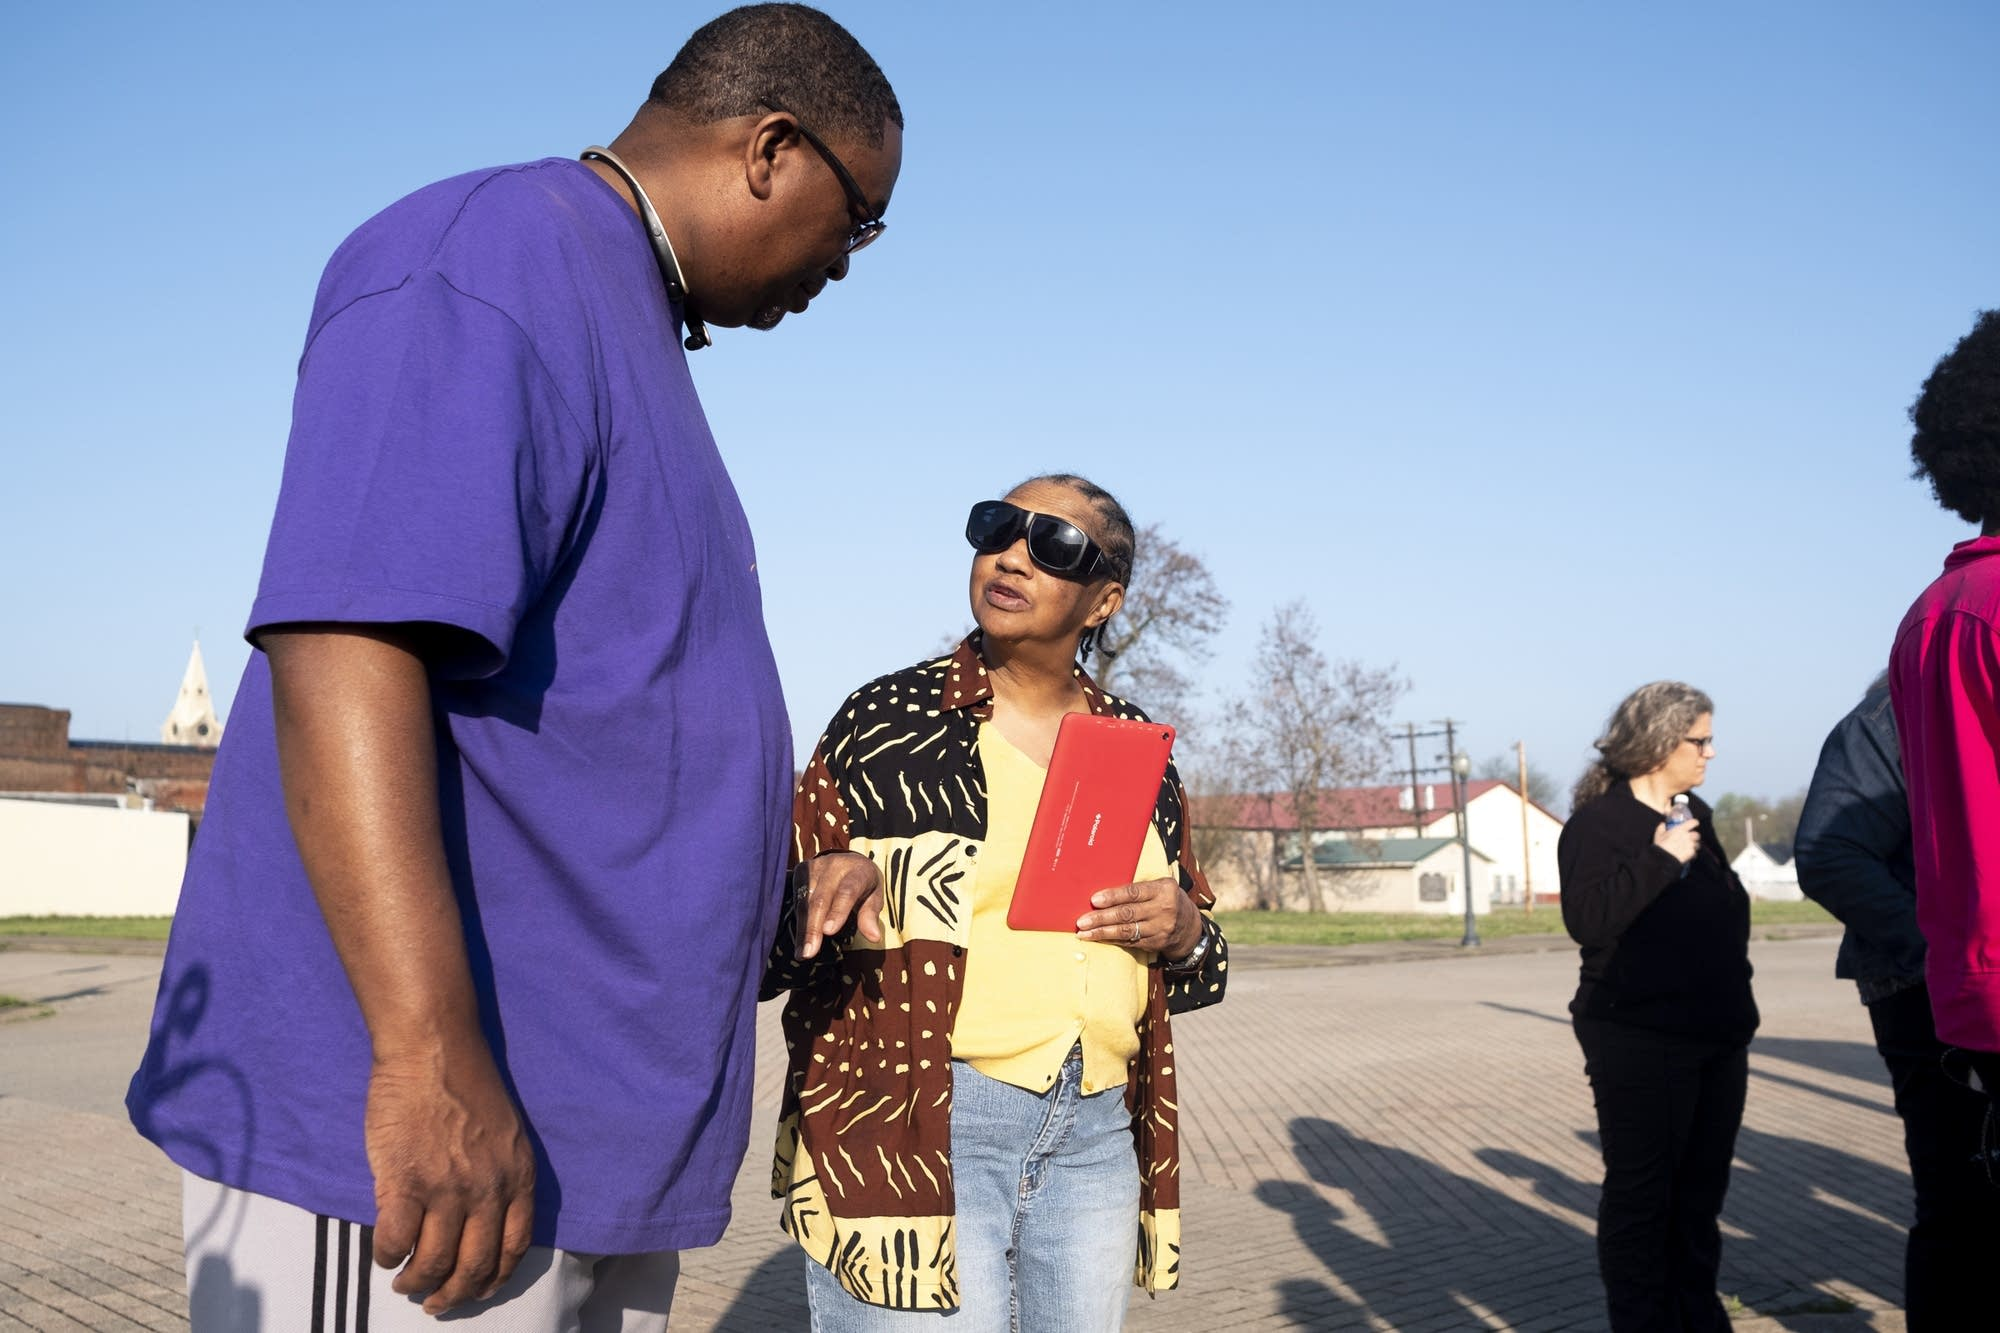 Carl Crawford speaks with Portia Johnson on the site of a lynching.